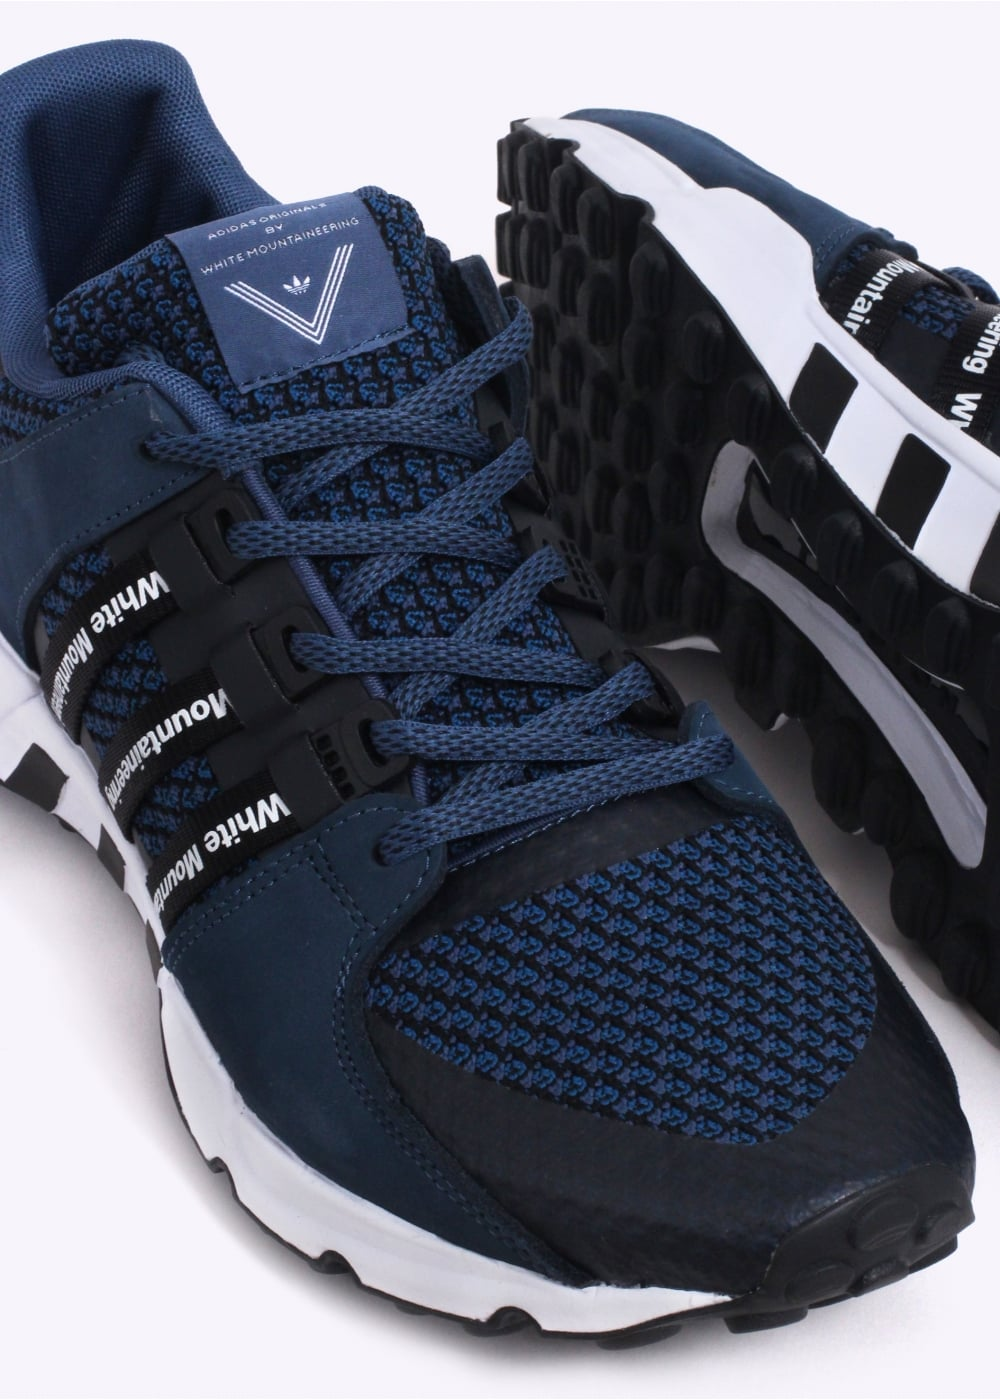 check out c5ceb 16d29 adidas Originals Apparel x White Mountaineering EQT Running - Night Marine